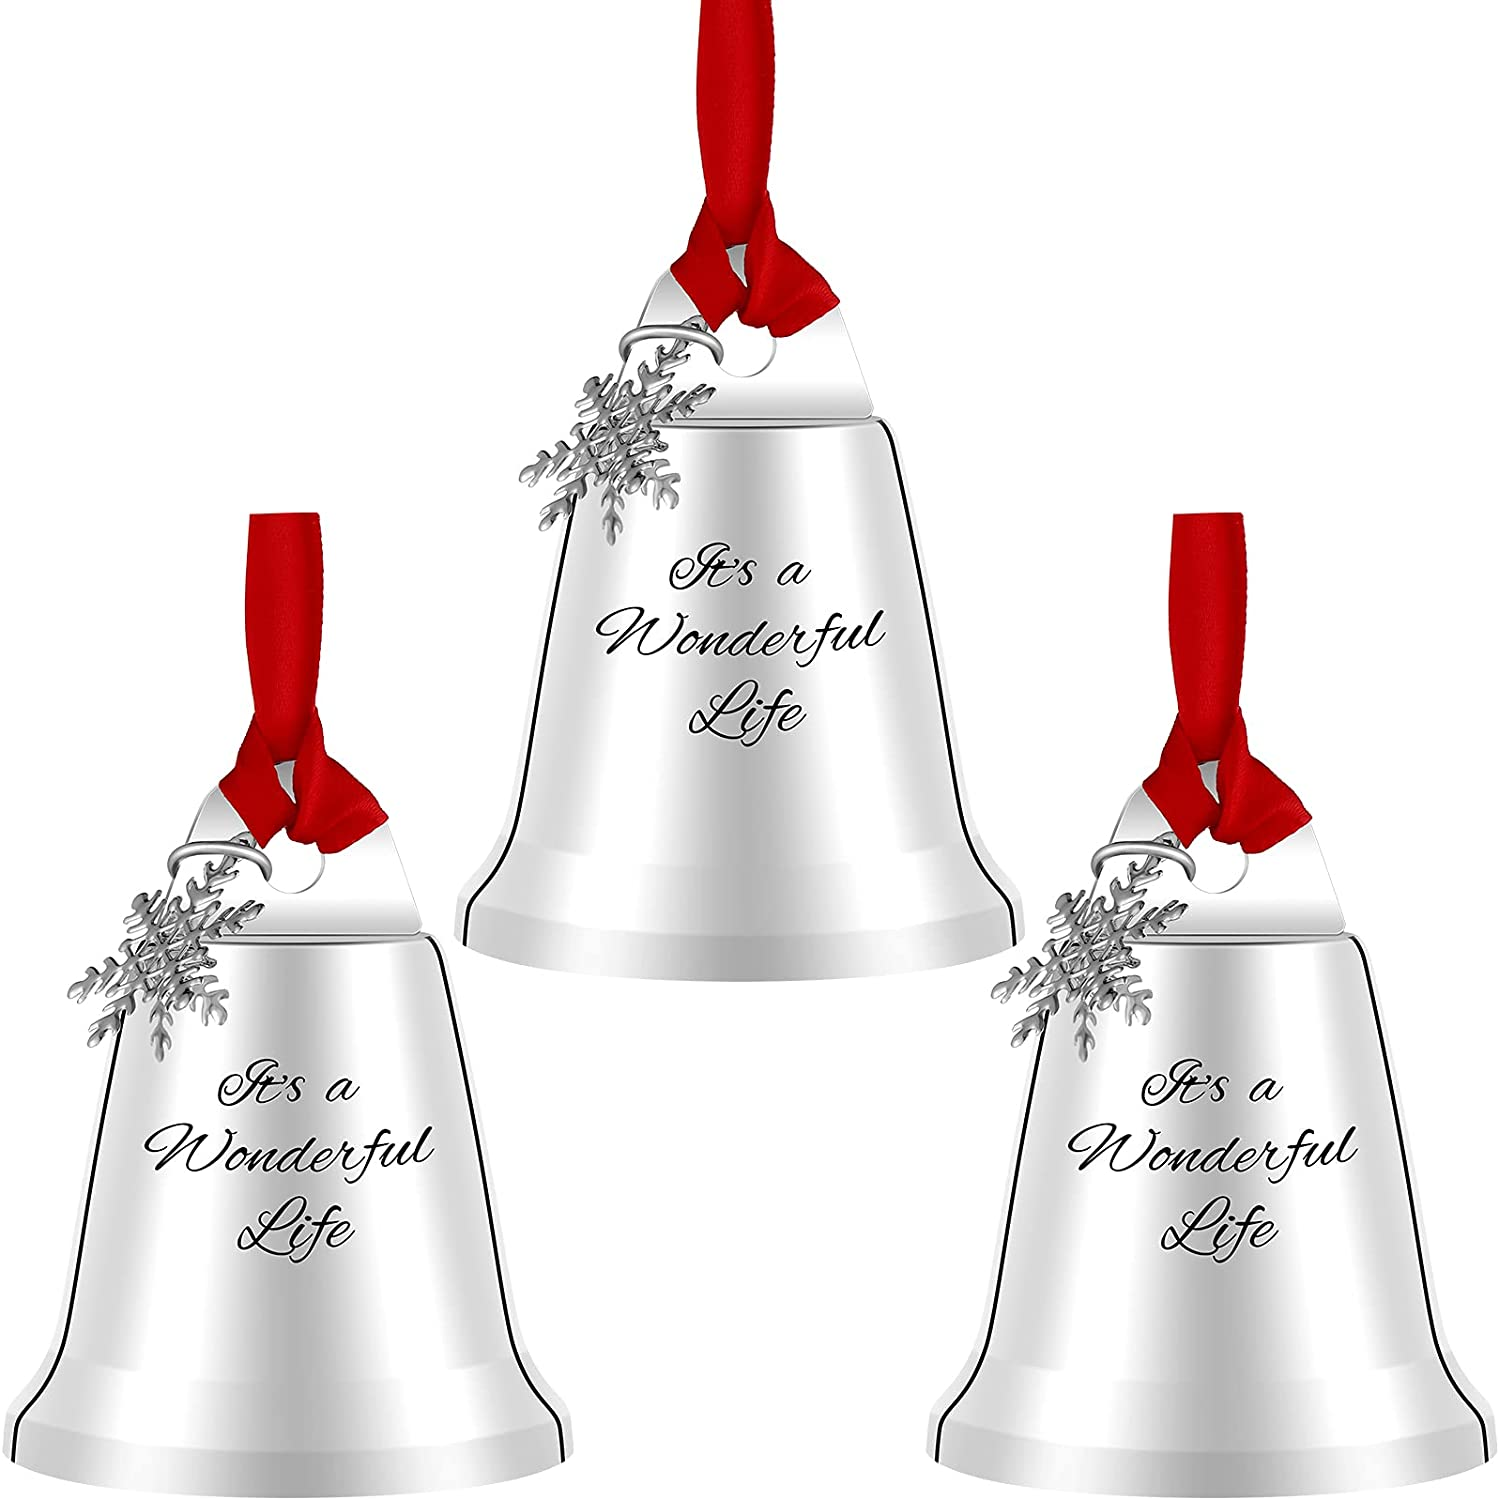 3 Pieces Christmas Bell Ornaments With Snowflake It's A Wonderful Life Hanging Bell Ornaments Christmas Silver Bell Ornaments with red ribbon Xmas Tree Bell Decors for Christmas Party Decor Supplies